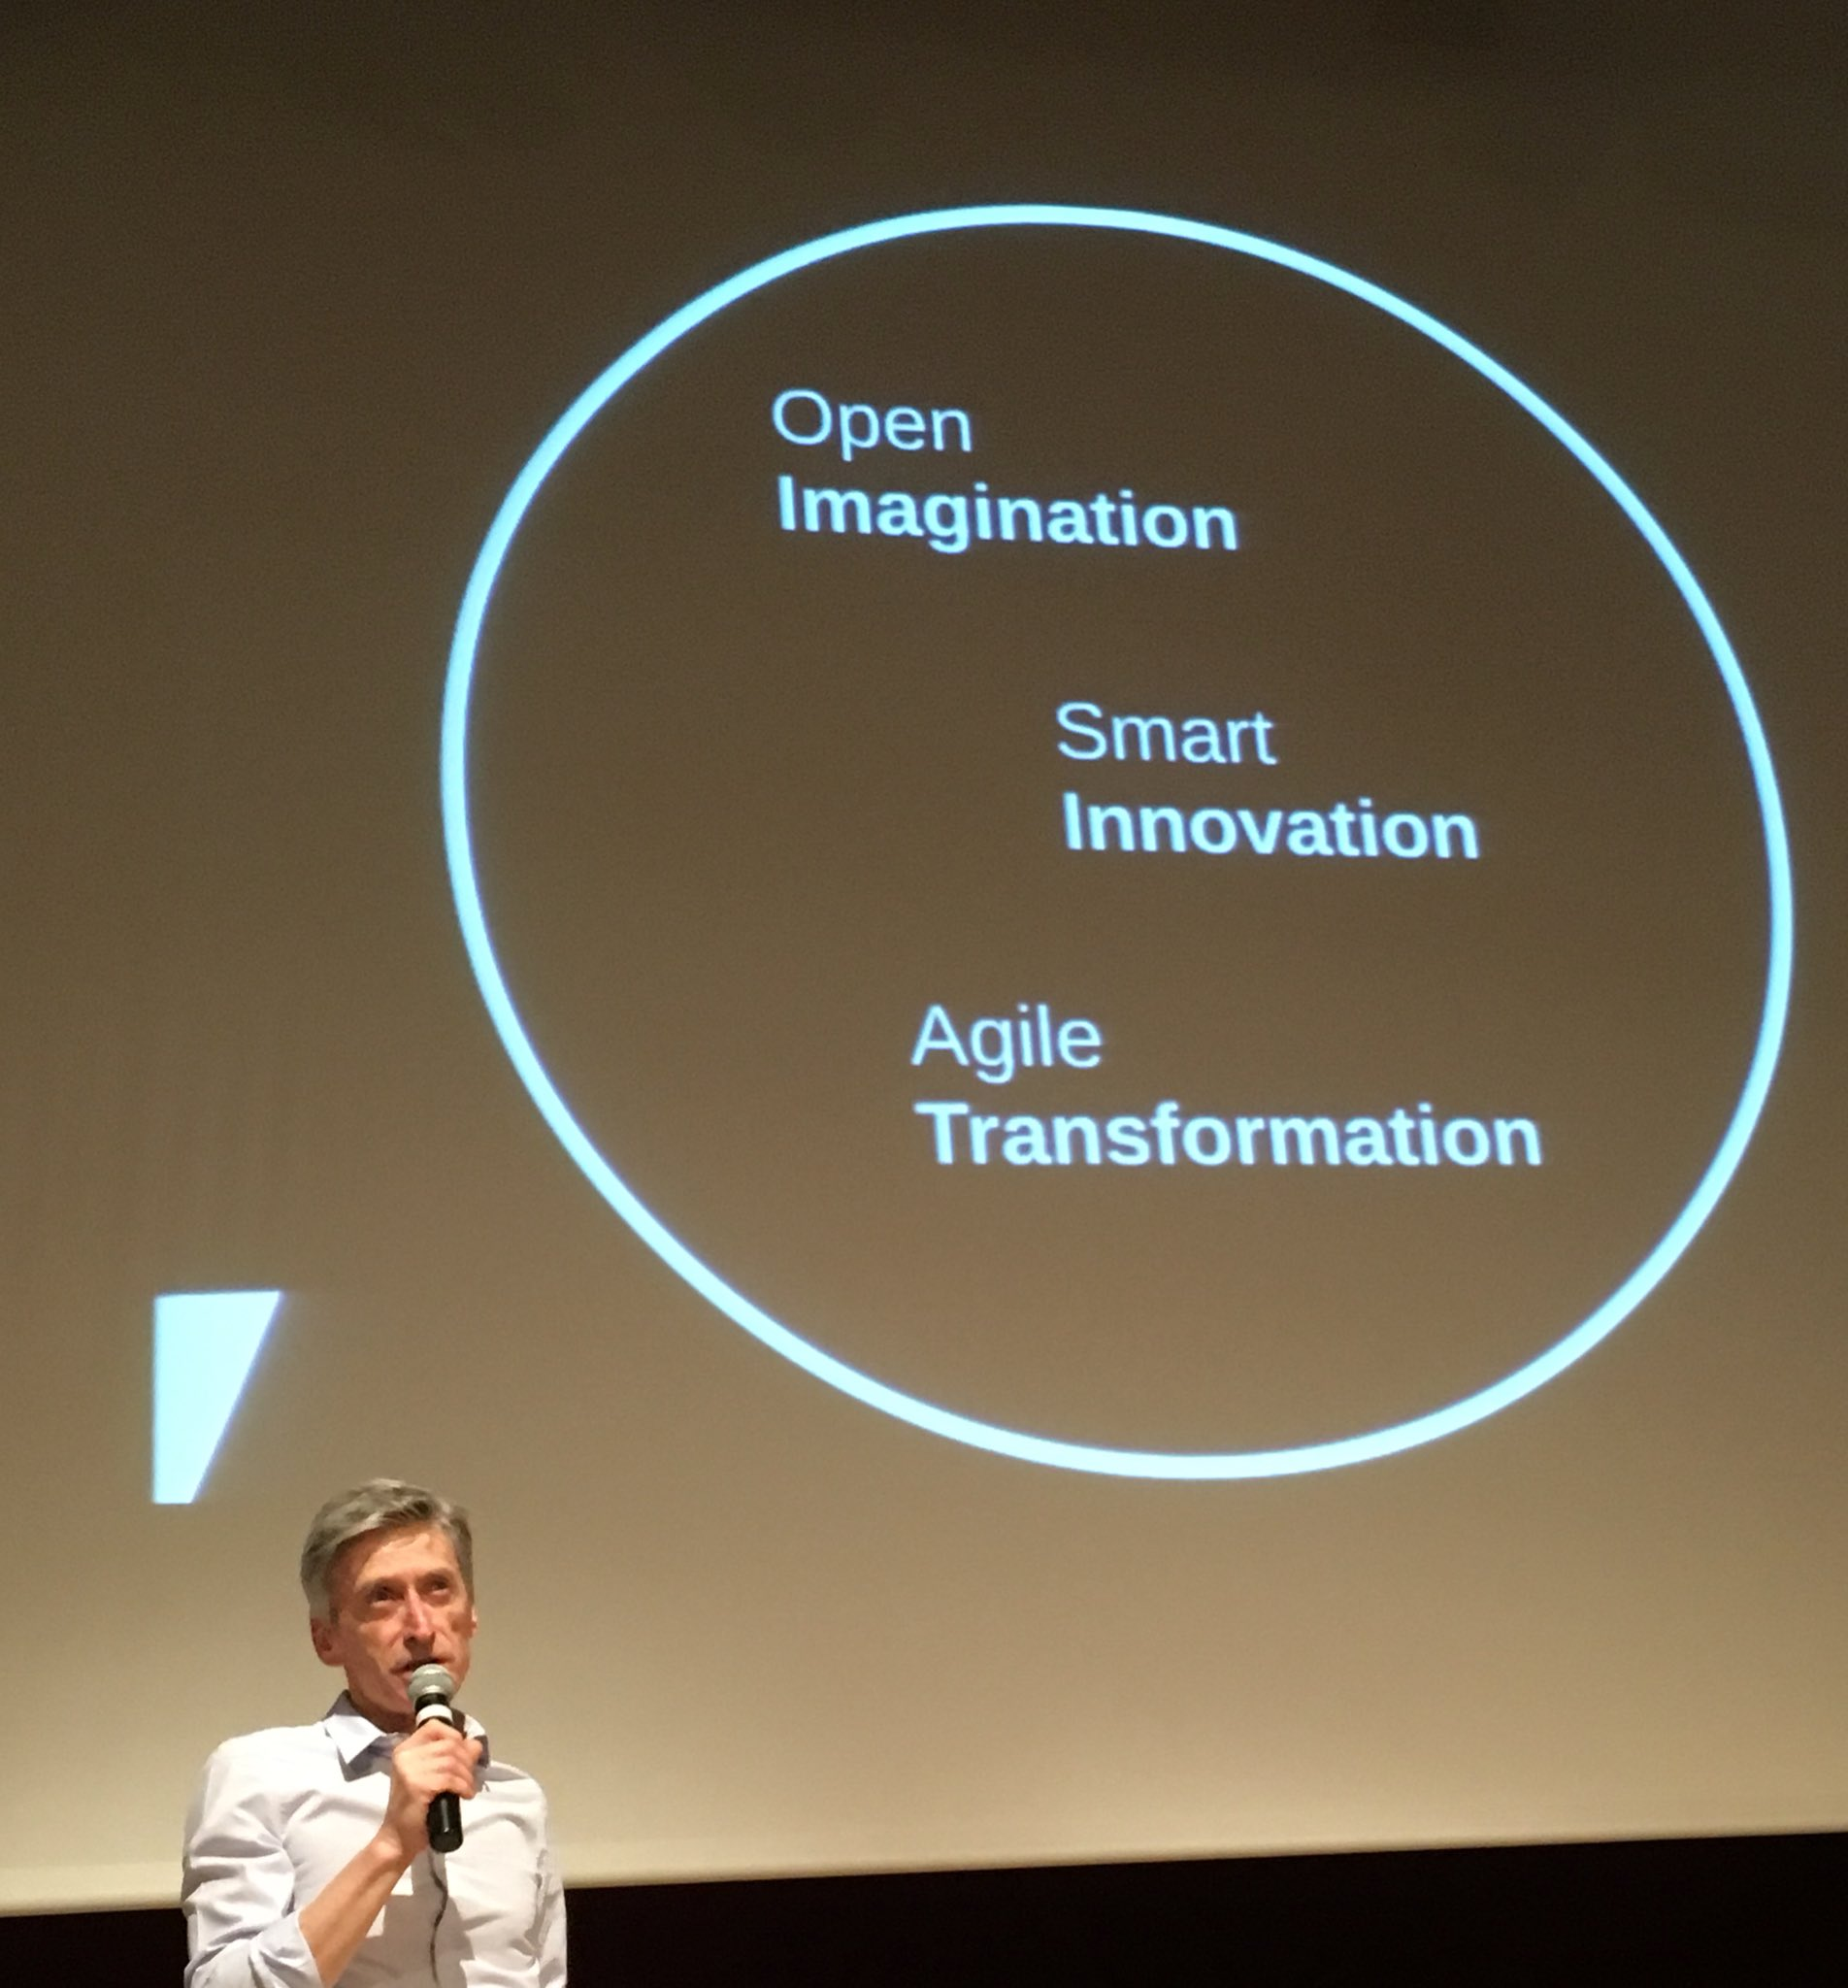 Open, smart, agile by @pdeniset #konvention2017 https://t.co/aO1R40aVqW